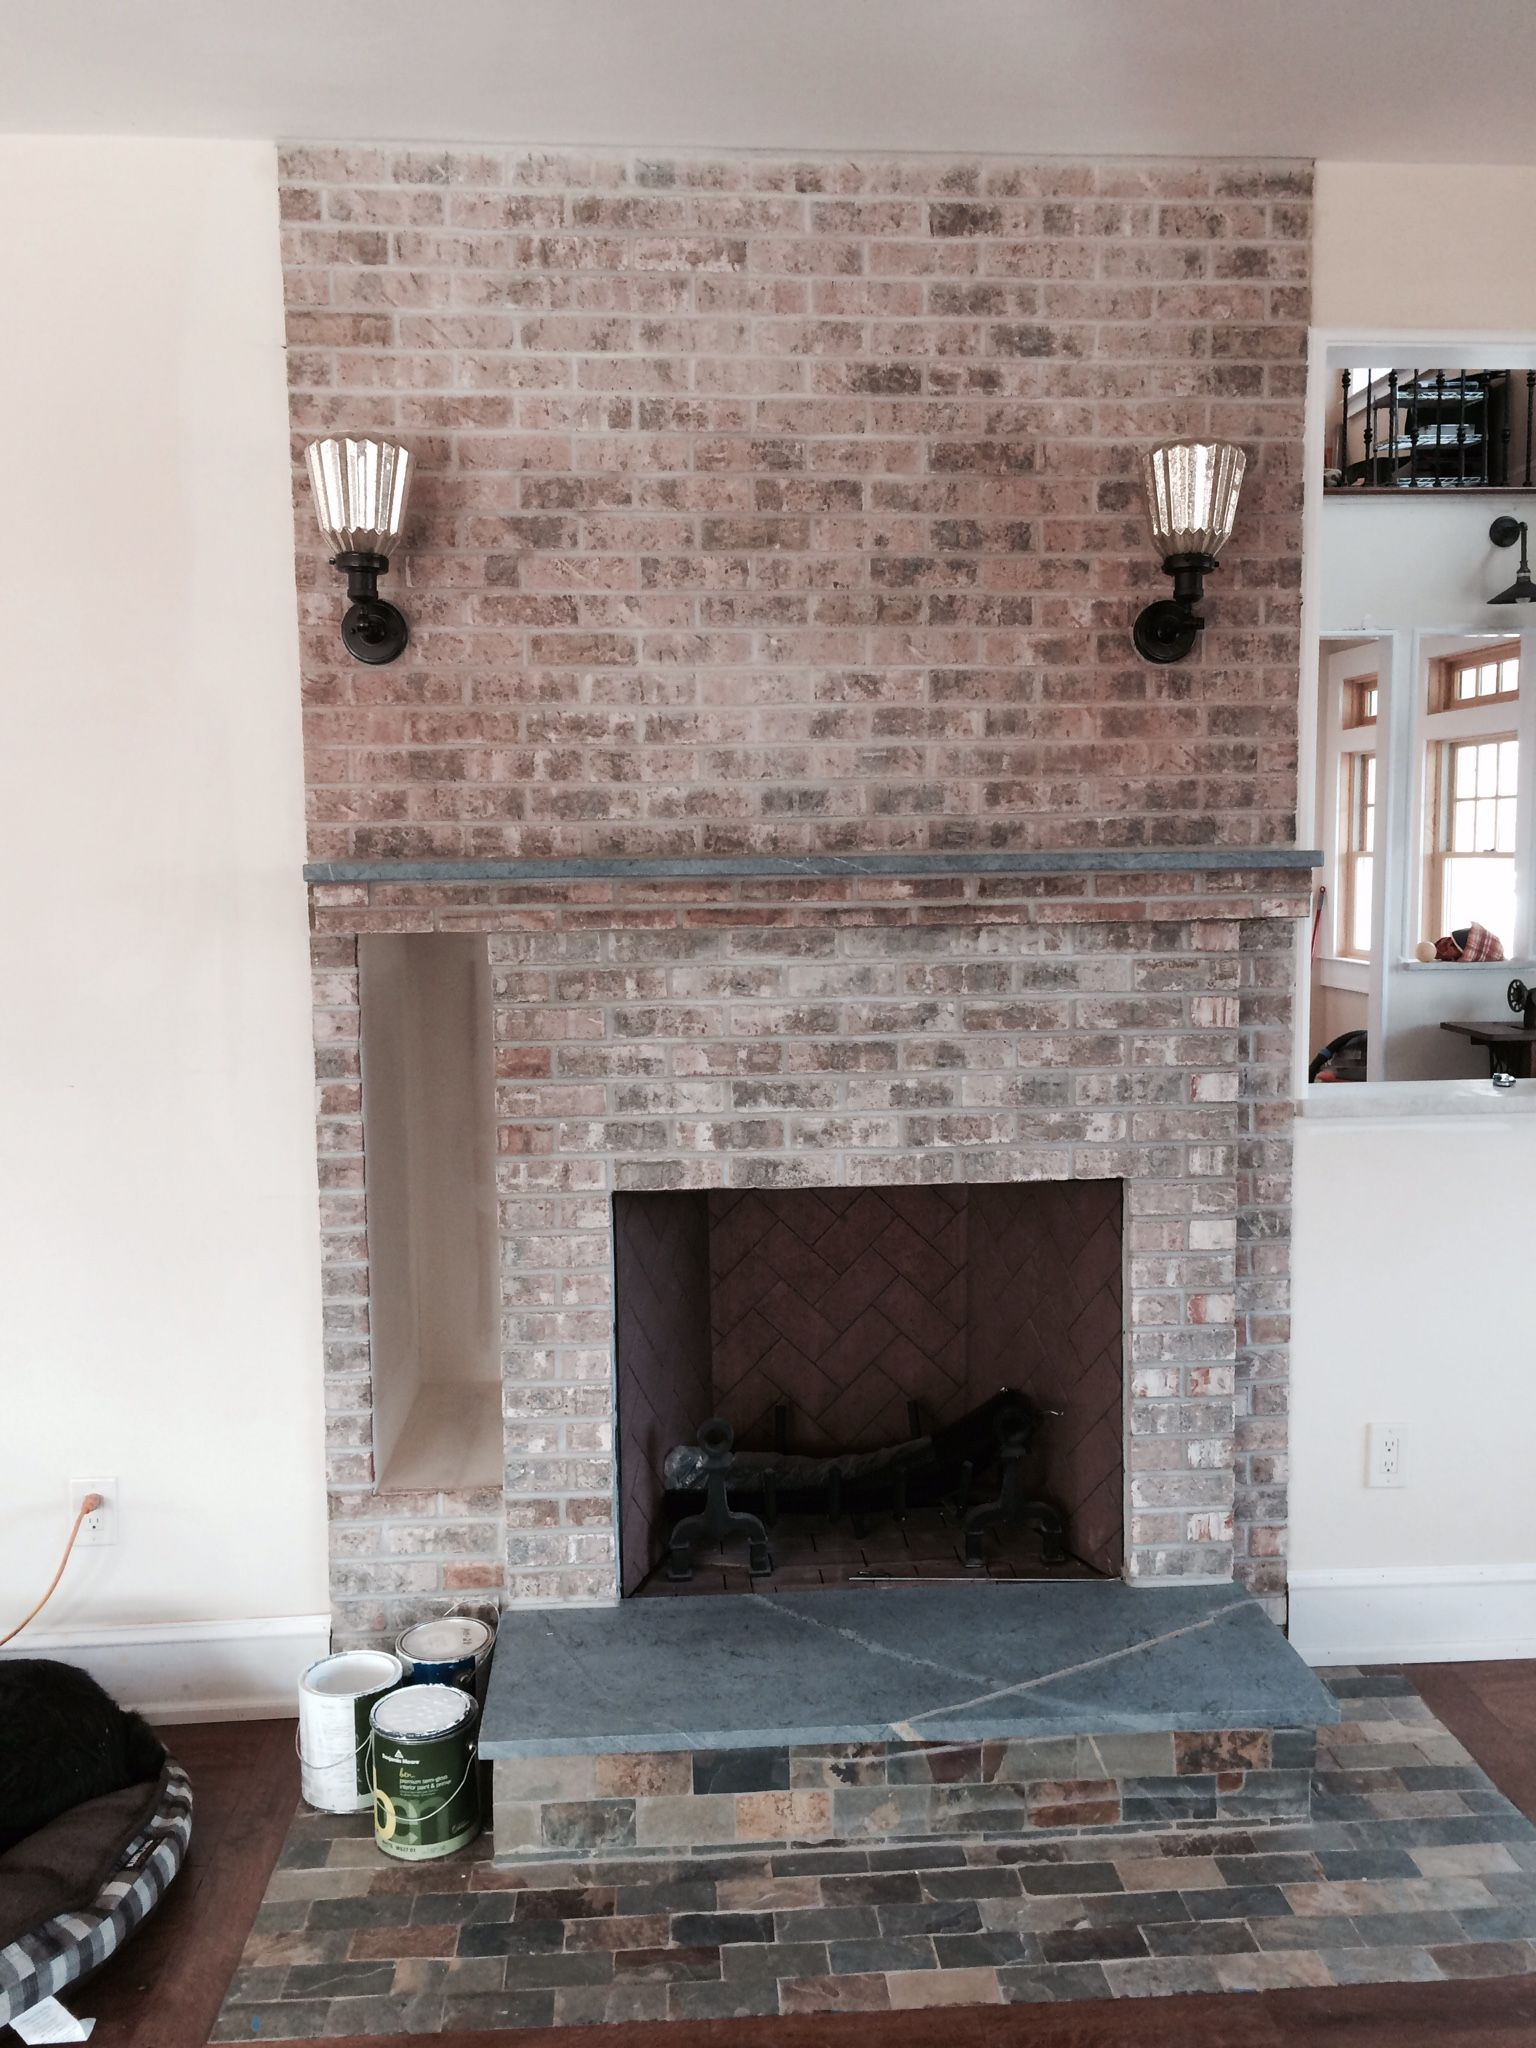 installation of a soapstone fireplace surround by www